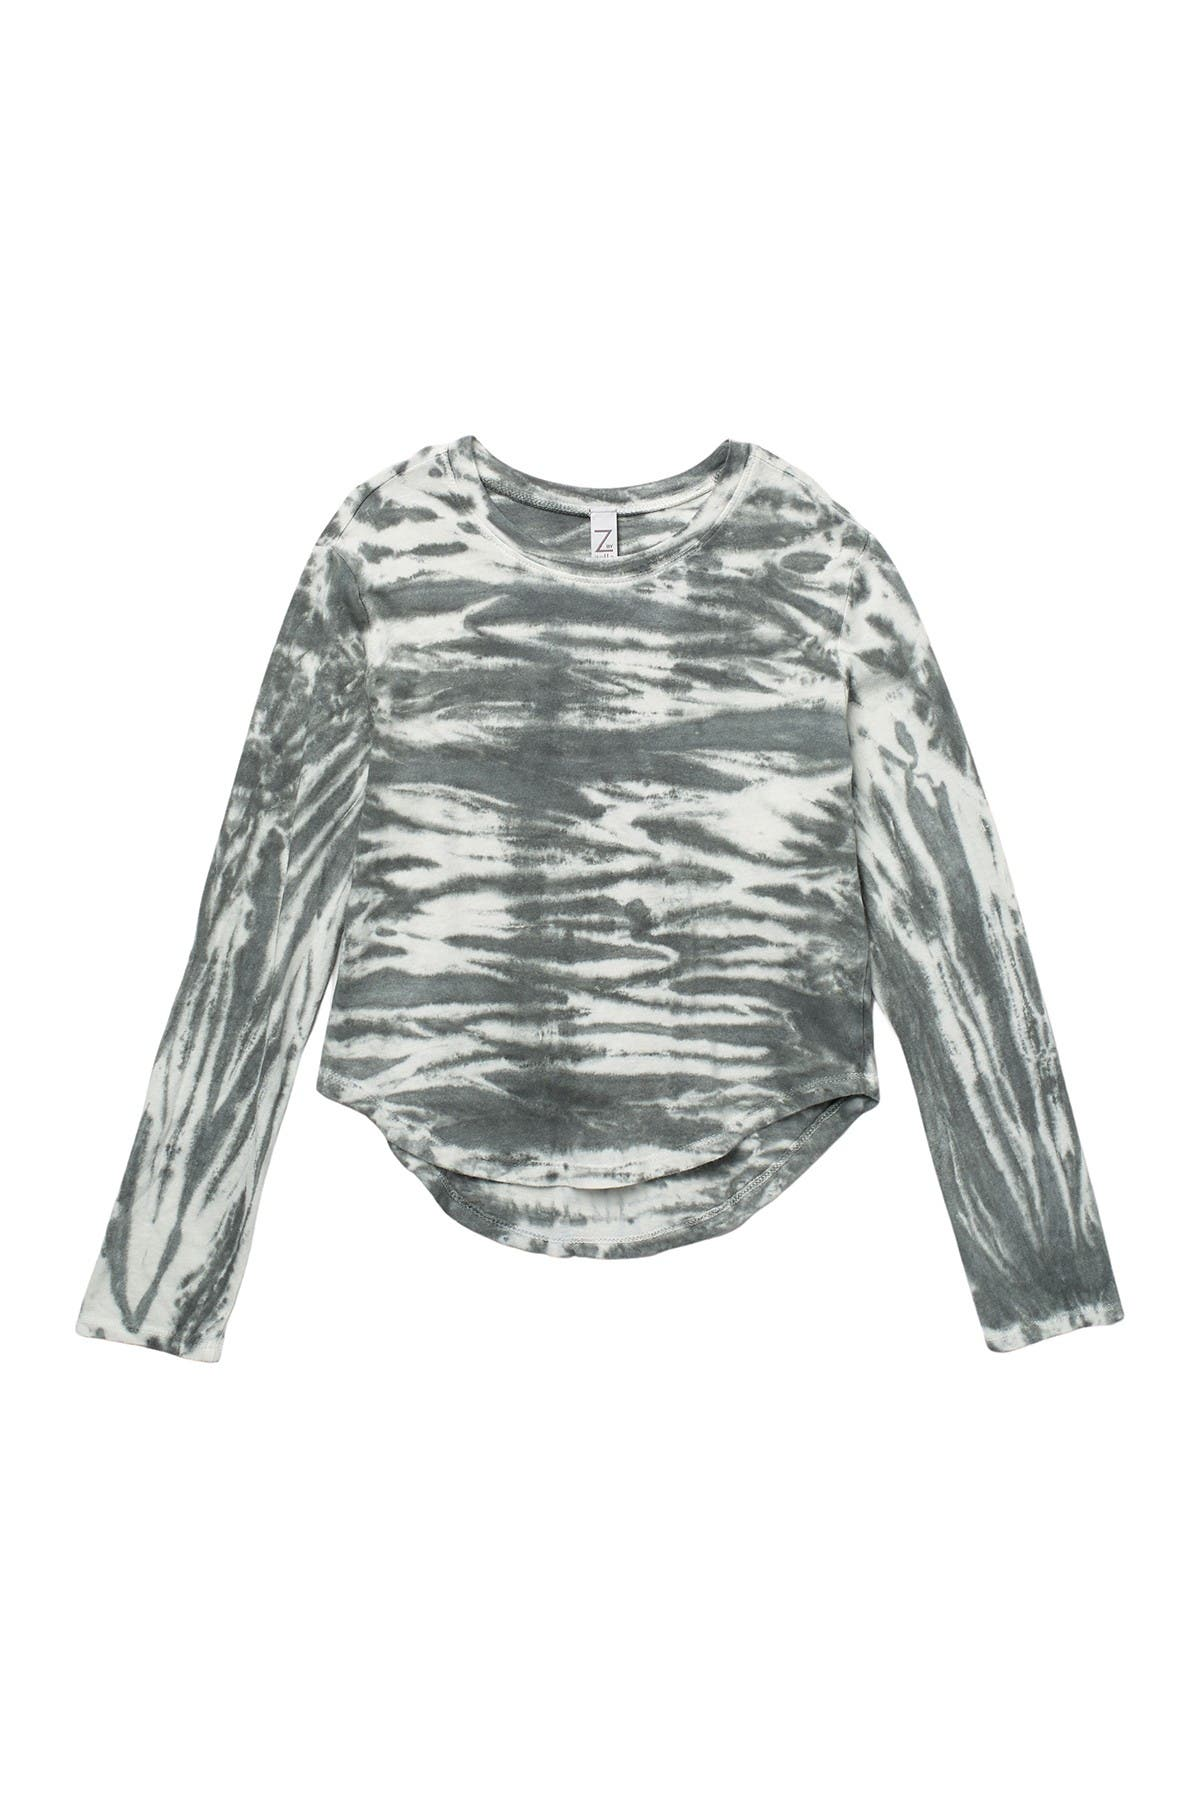 Image of Z by Zella Girl Long Sleeve Tie Dye Top